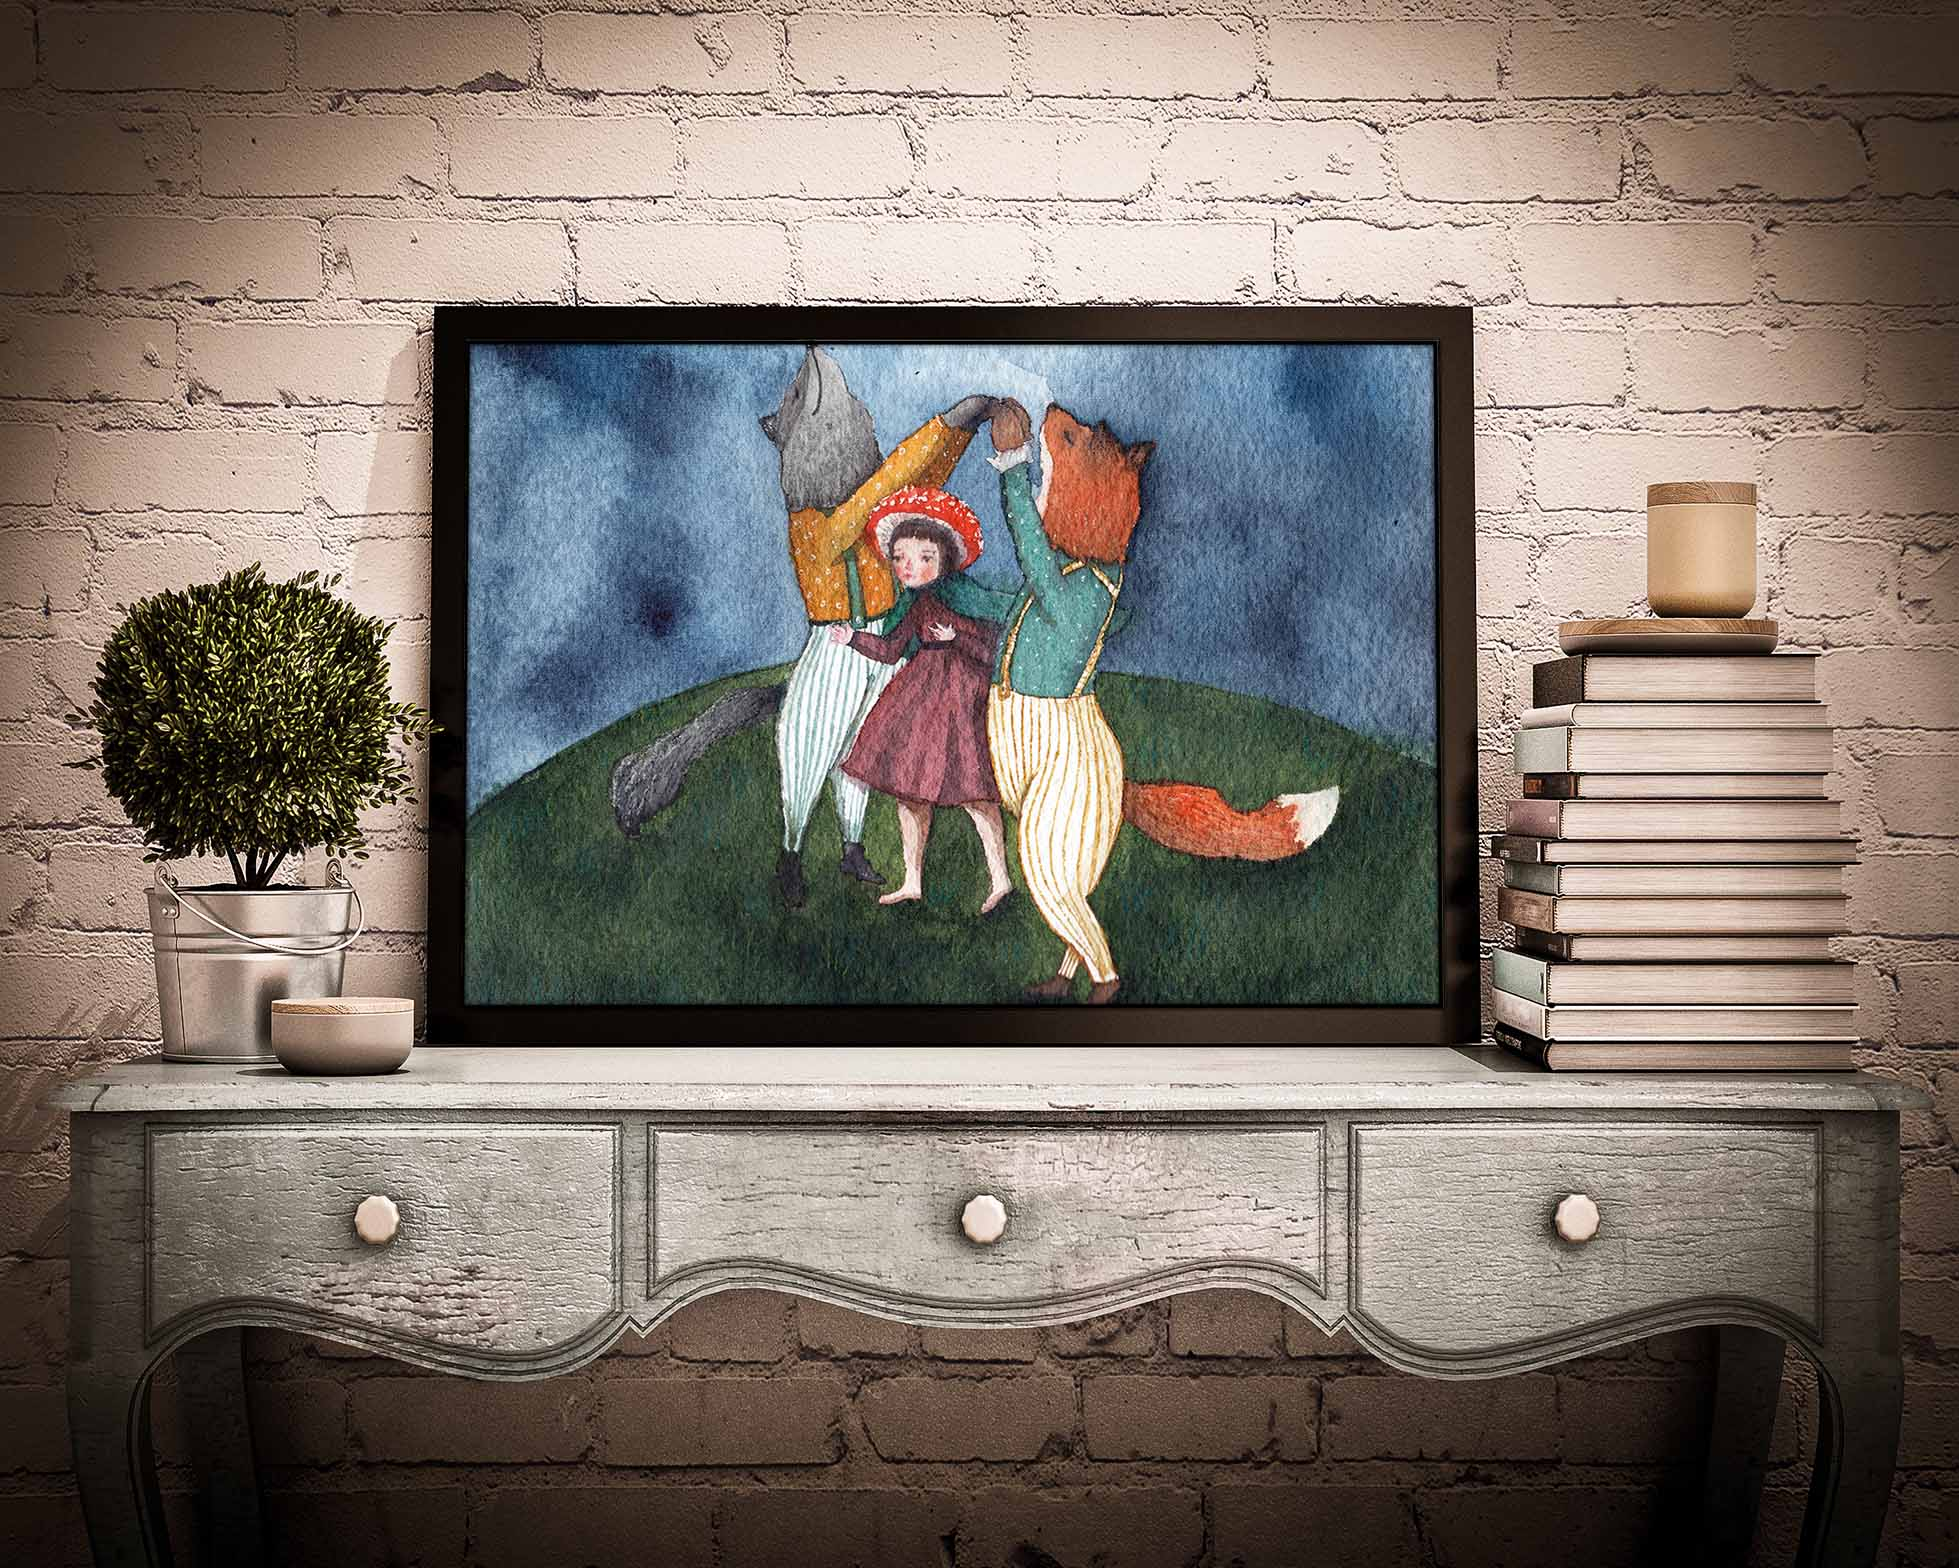 An original watercolor painting by Idania Salcido in a poster wall art. A fox, a wolf and a girl dance together in a meadow at midnight at the magical forest.